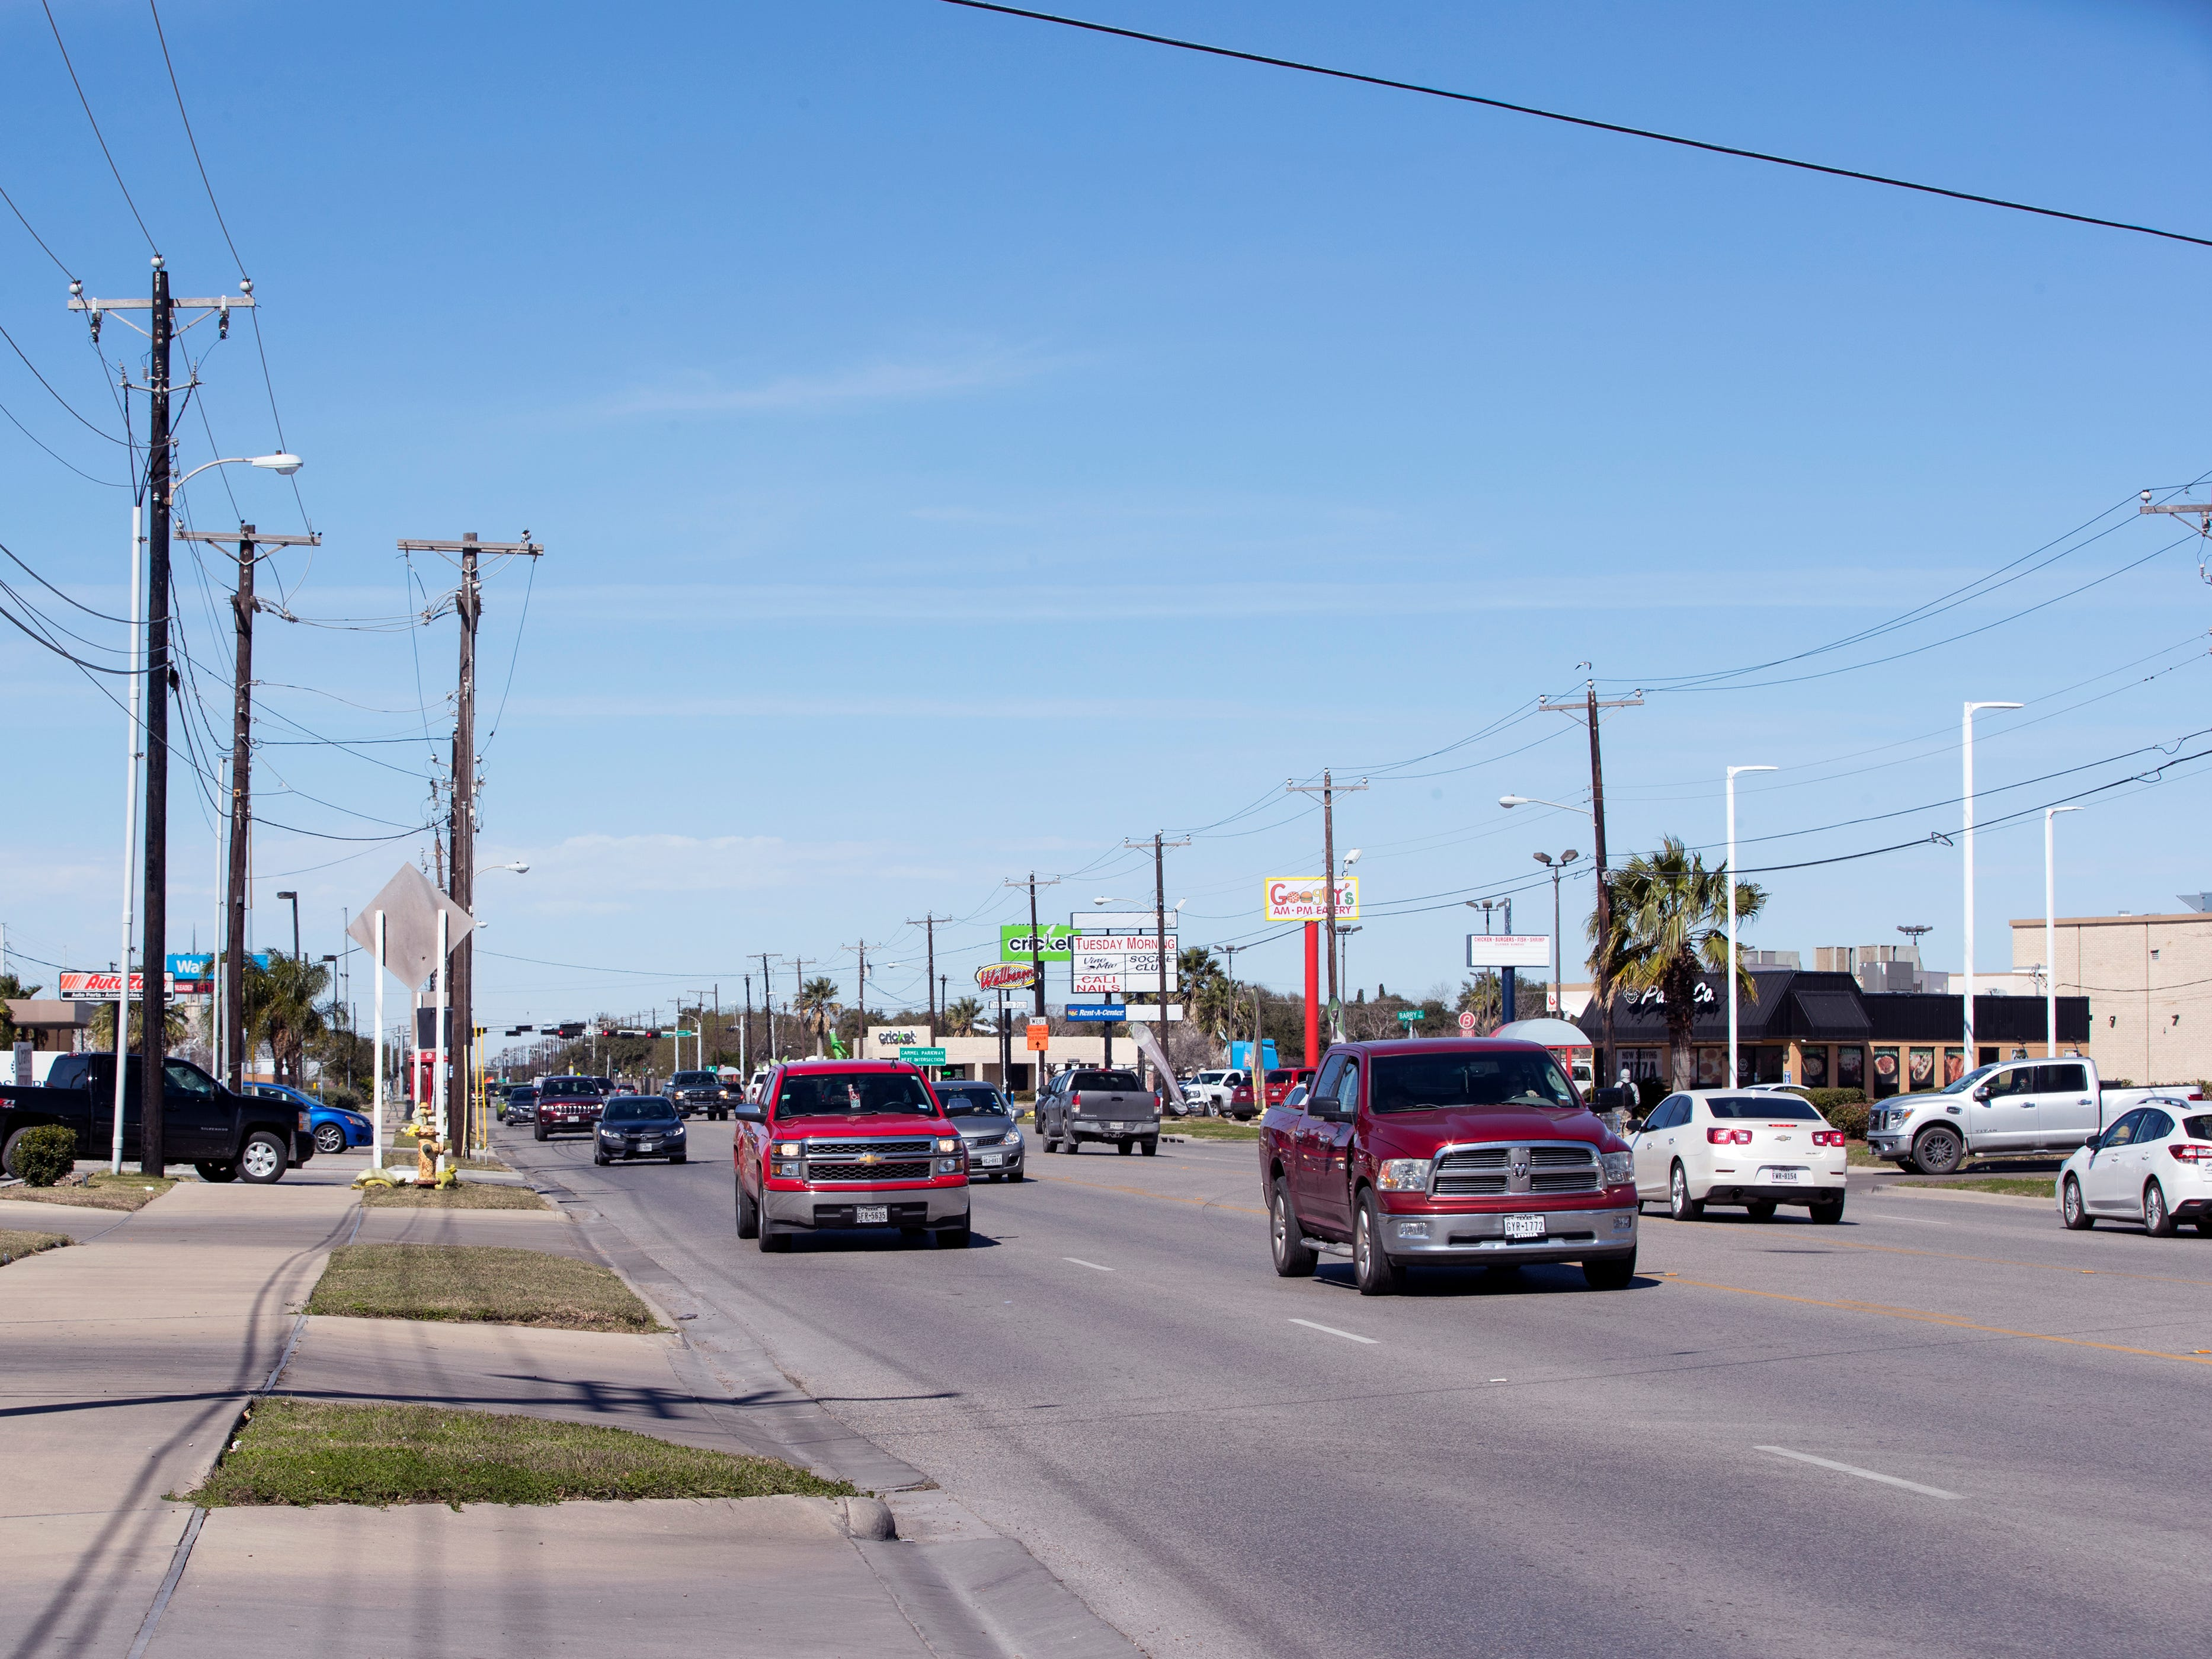 Statistics from the Corpus Christi Police Department show that a high number of auto-pedestrian accidents take place between the blocks of 4000 to 42000 South Staples Street. Vehicles travel along this stretch on Tuesday, January 29, 2019.